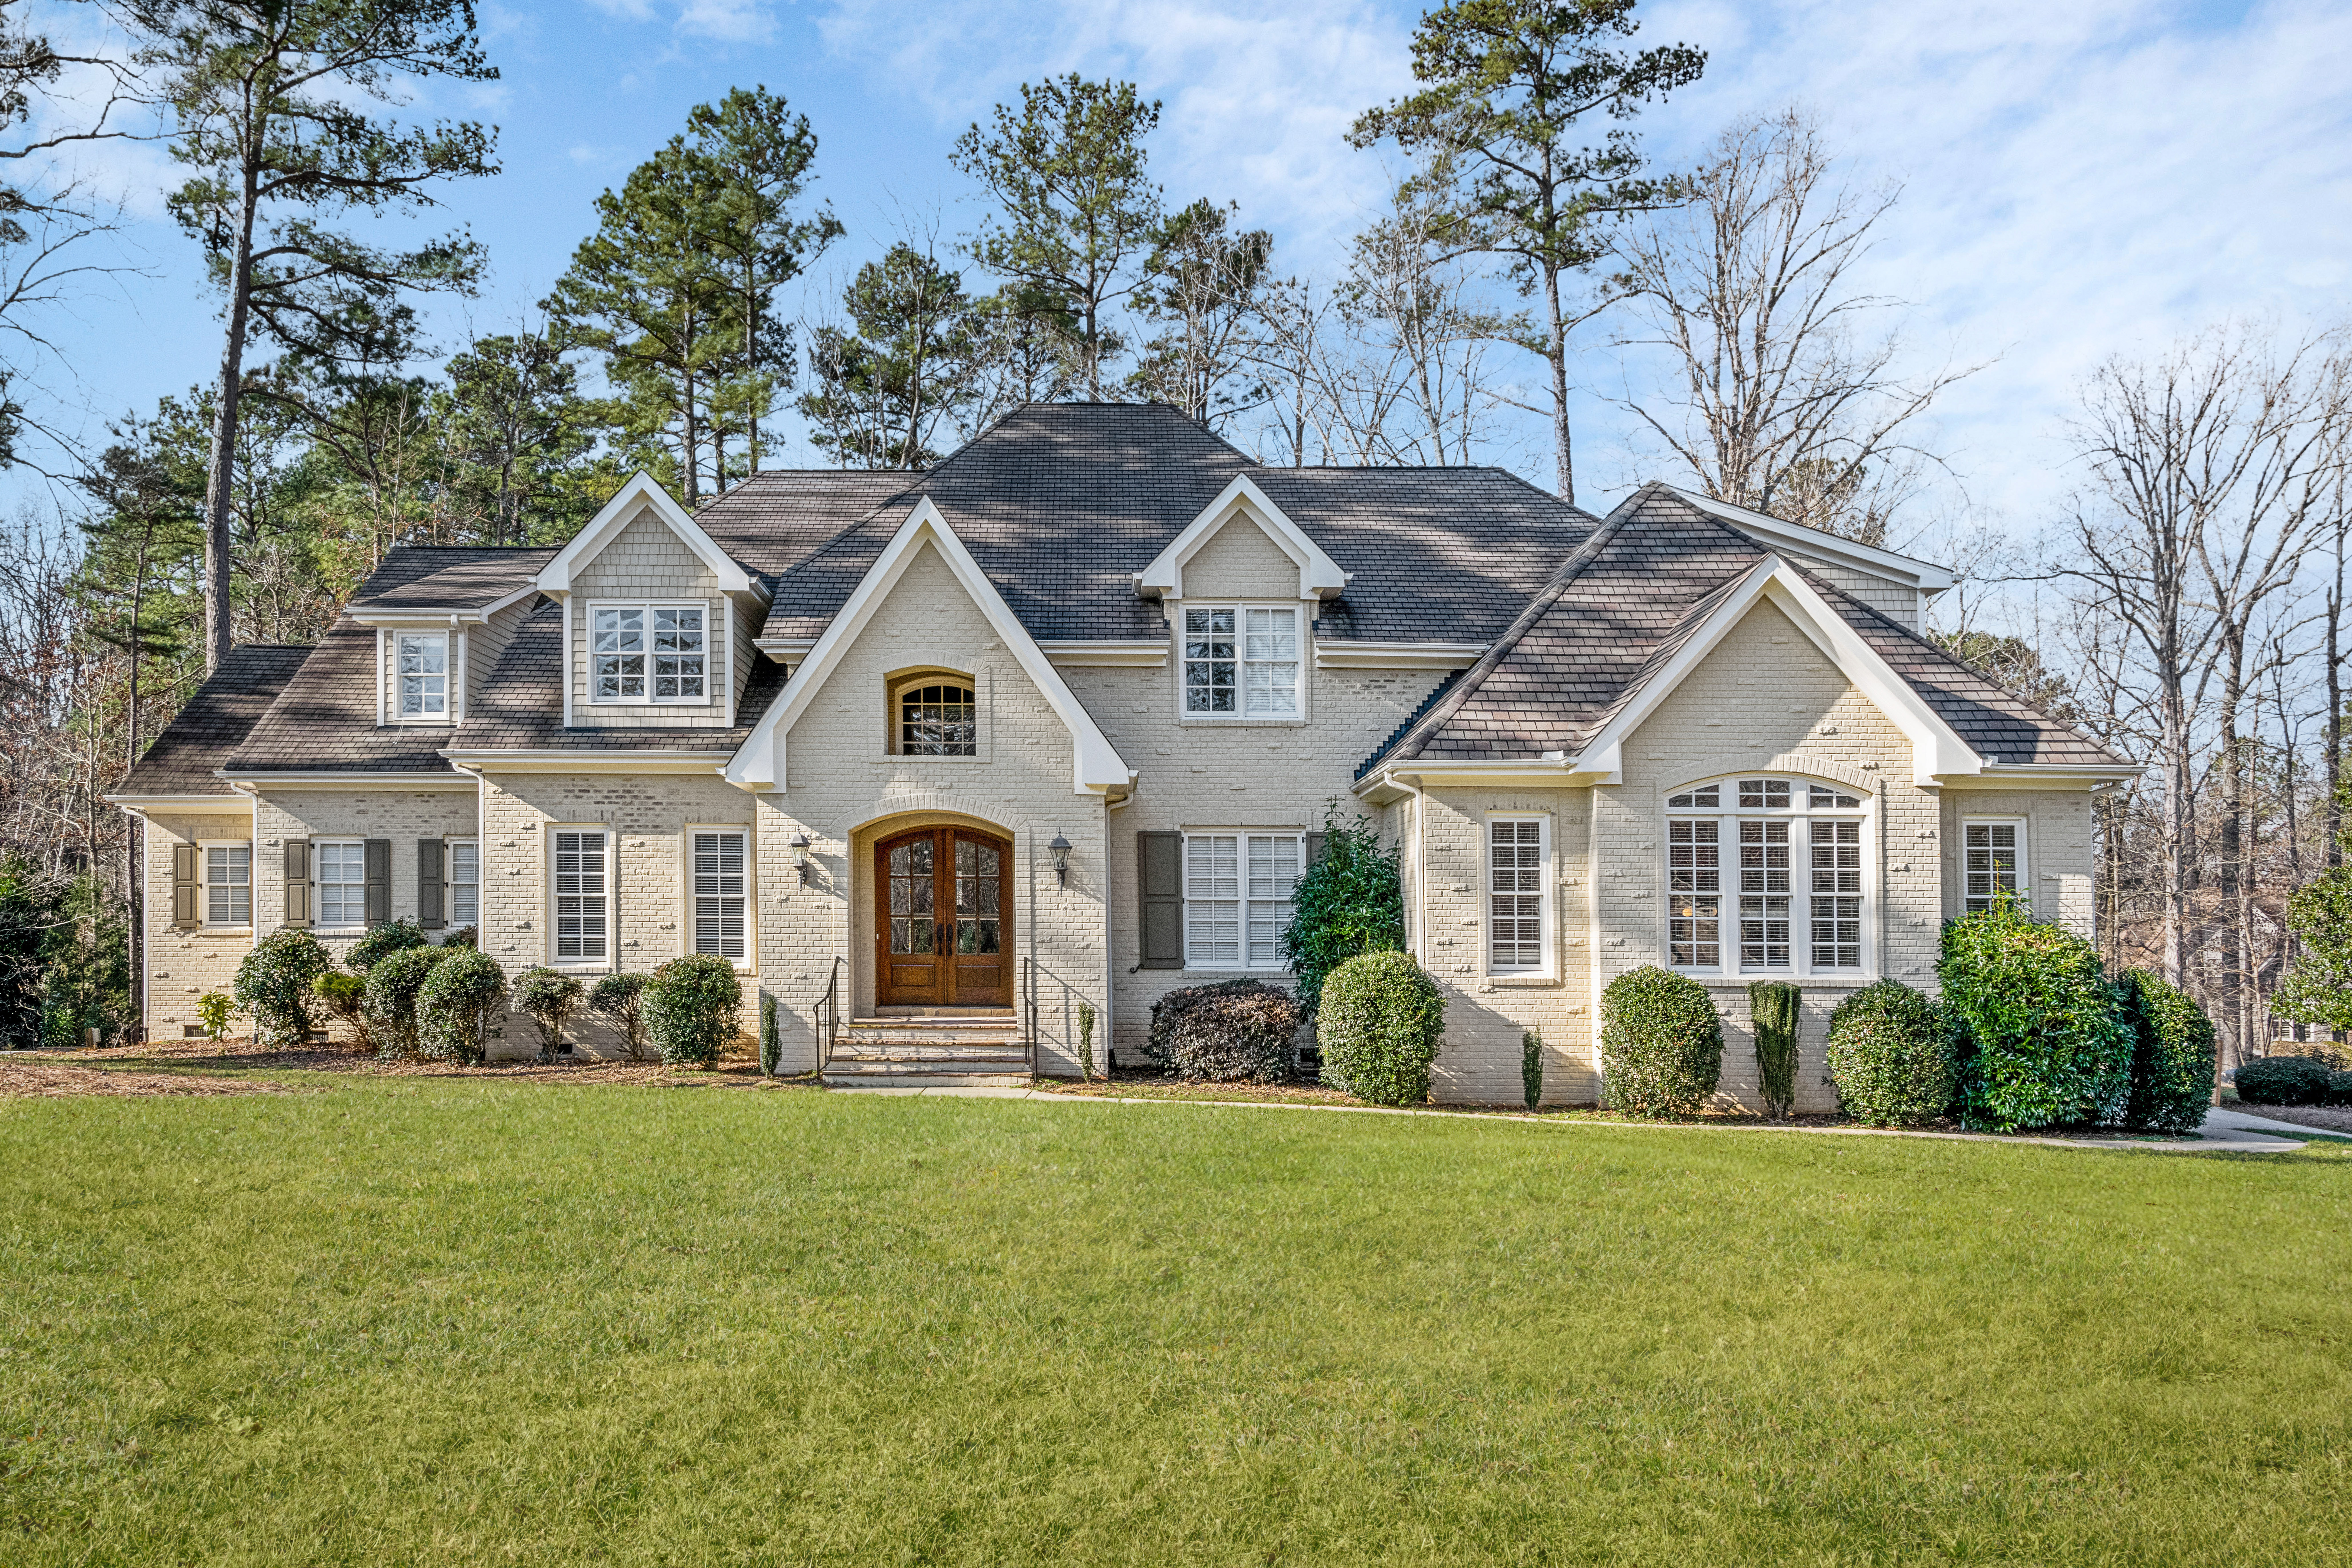 1312 Caistor Lane Raleigh NC 27614 Hillman Real Estate Group at eXp Realty Buyer Closing